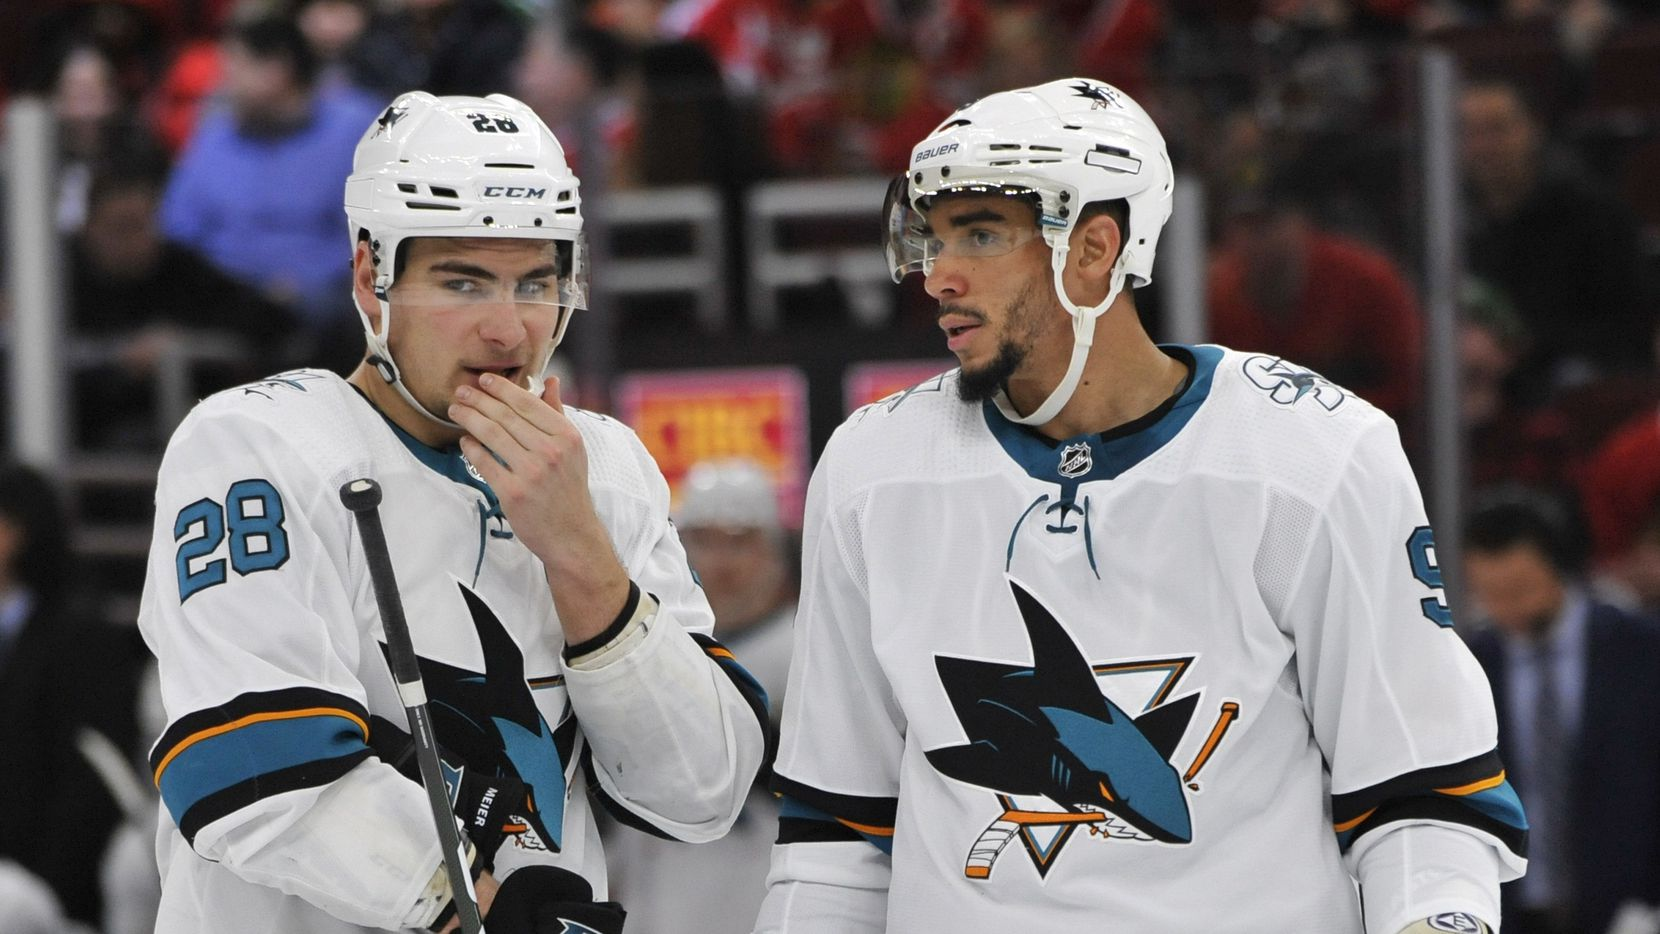 San Jose Sharks' Timo Meier (28) talks with teammate Evander Kane (9) during the third period of an NHL hockey game against the Chicago Blackhawks Wednesday, March 11, 2020, in Chicago.